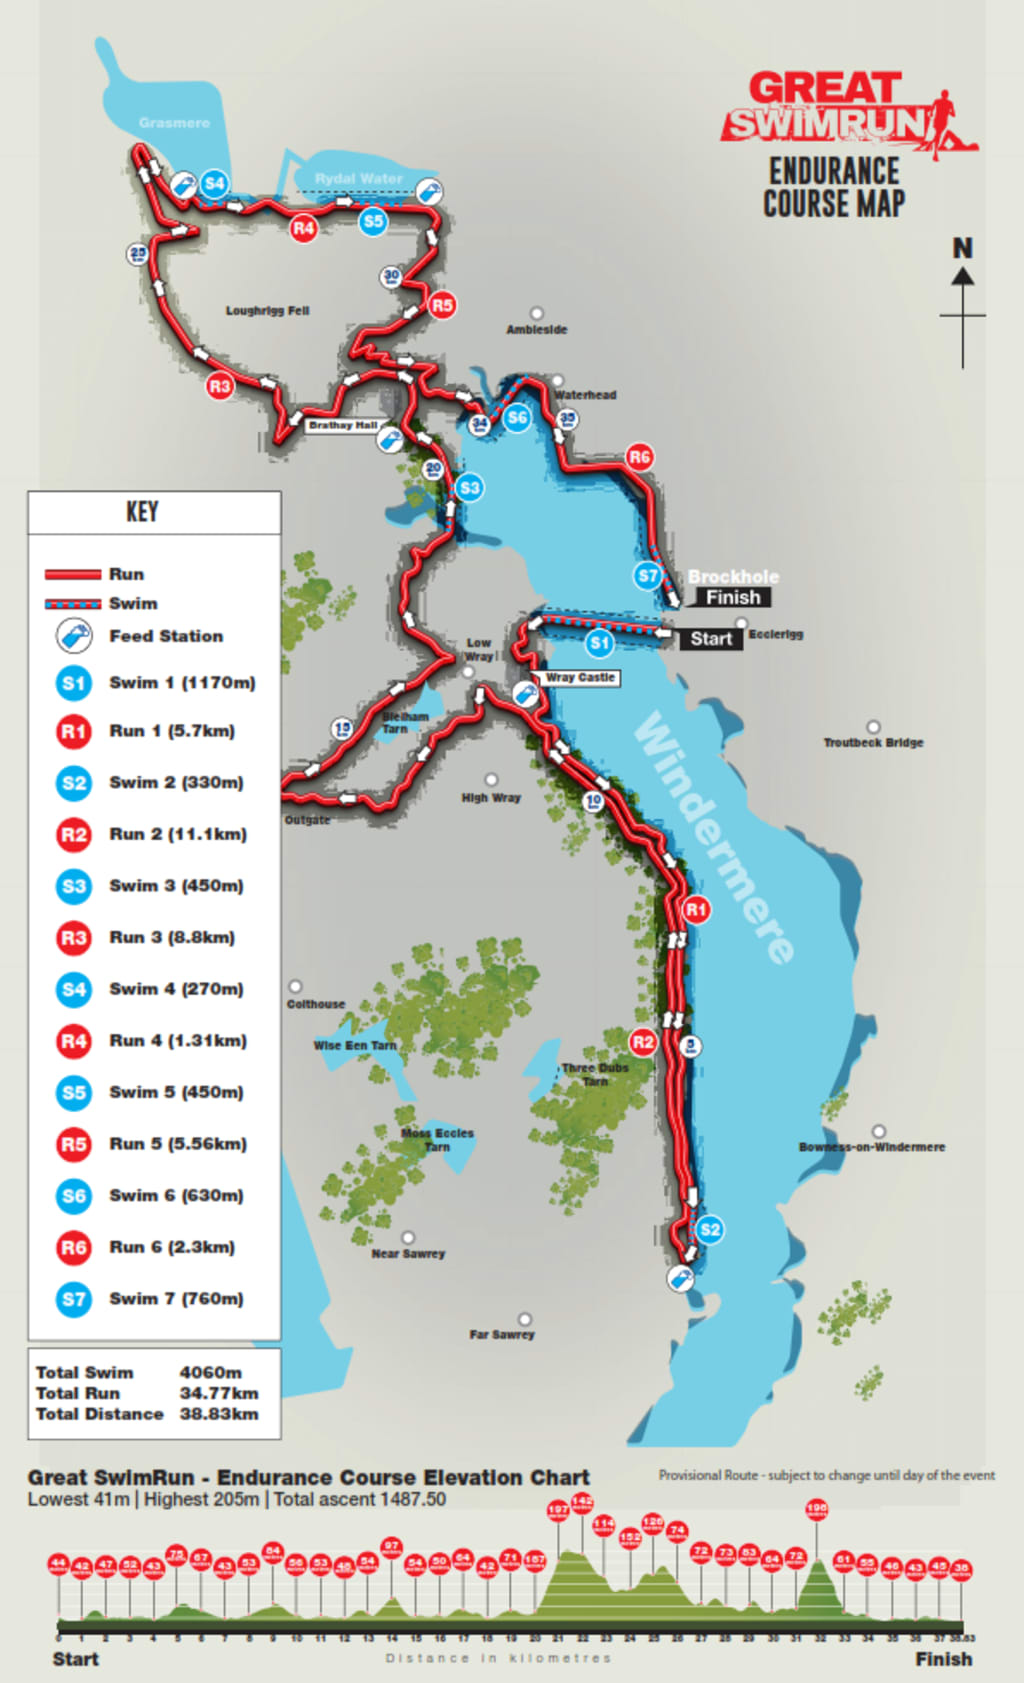 GreatSwimRun2018-Endurance-Course-Map-Lo-Res_001.png